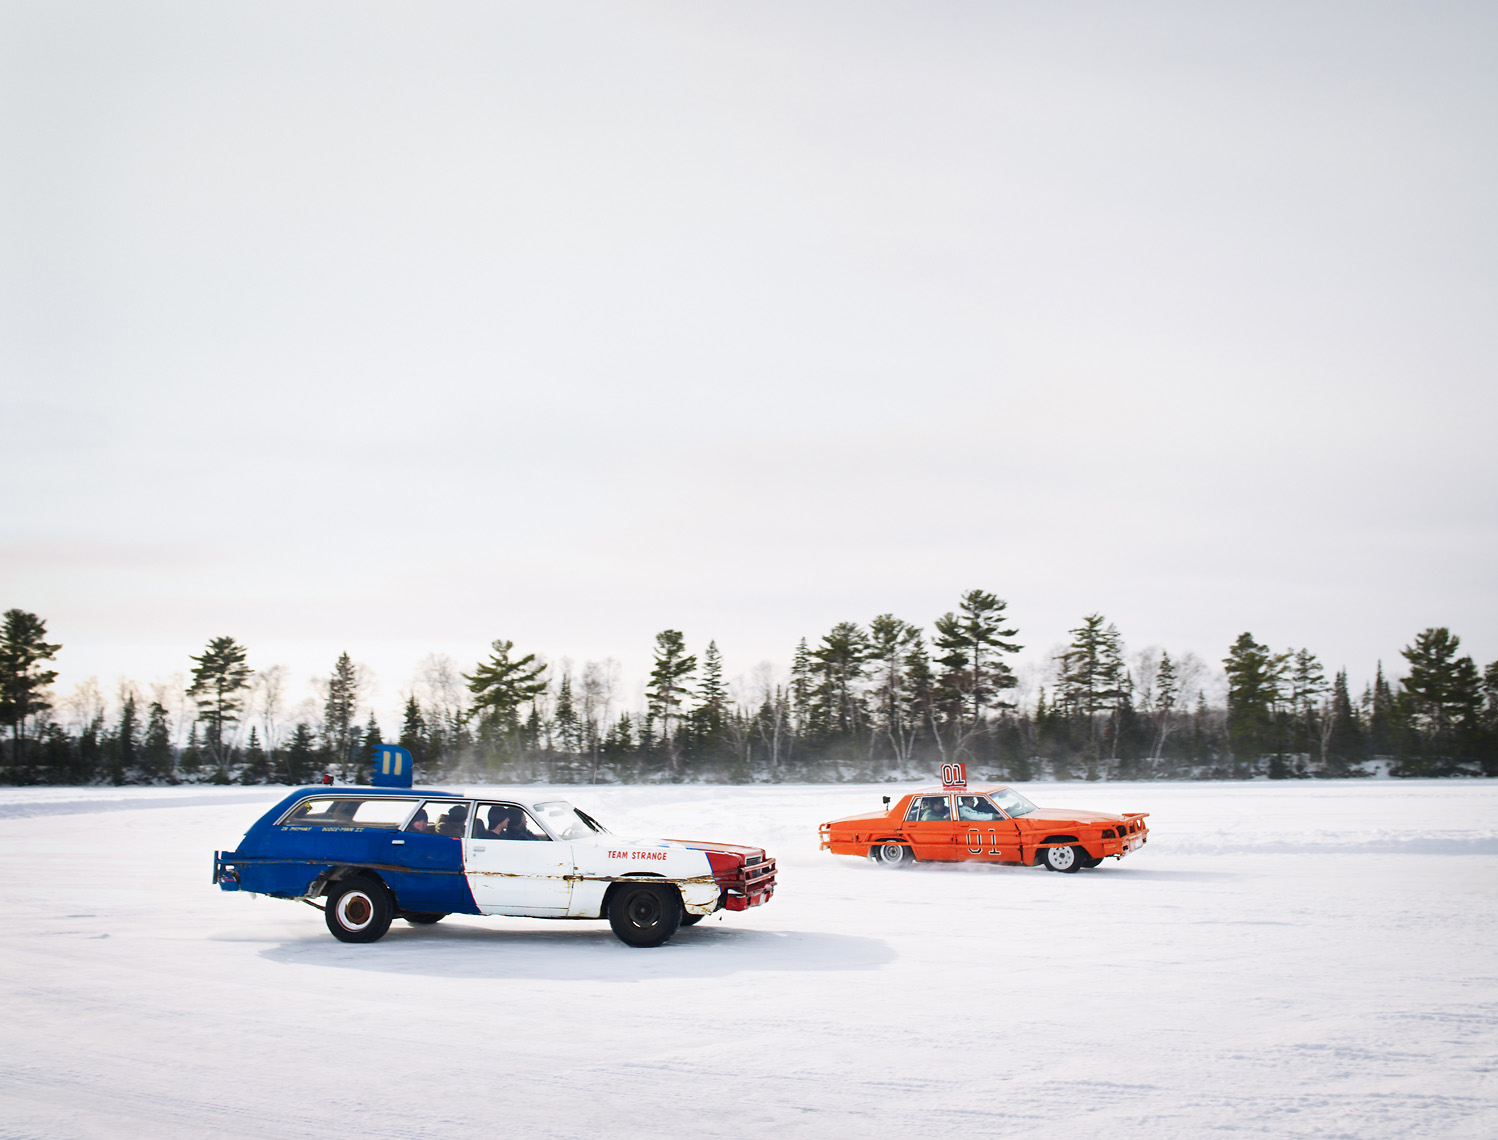 Ice racers with family in car for added weight lifestyle